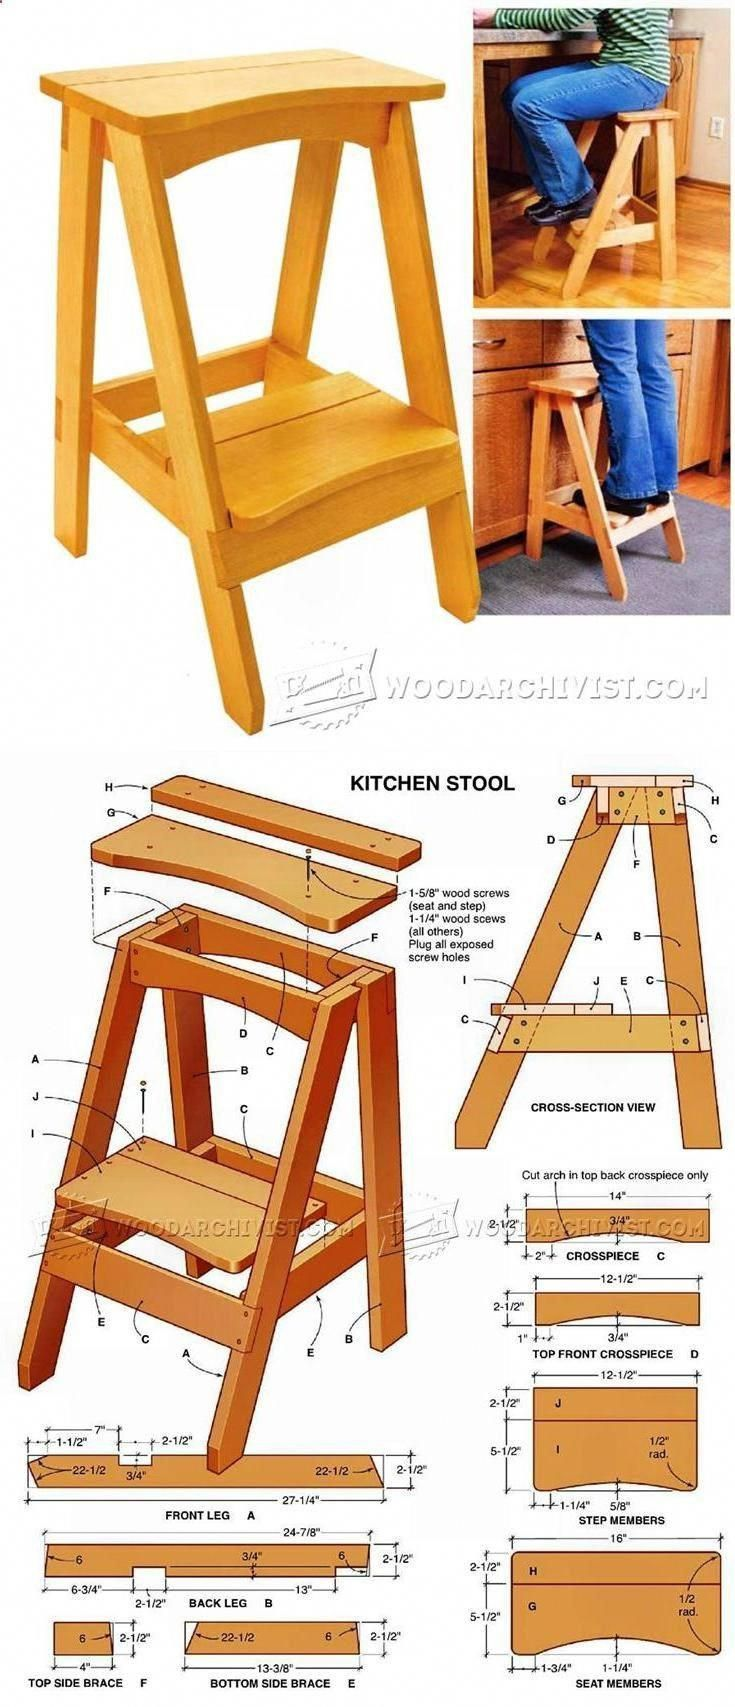 kitchen step stool plans furniture plans and projects rh pinterest ca